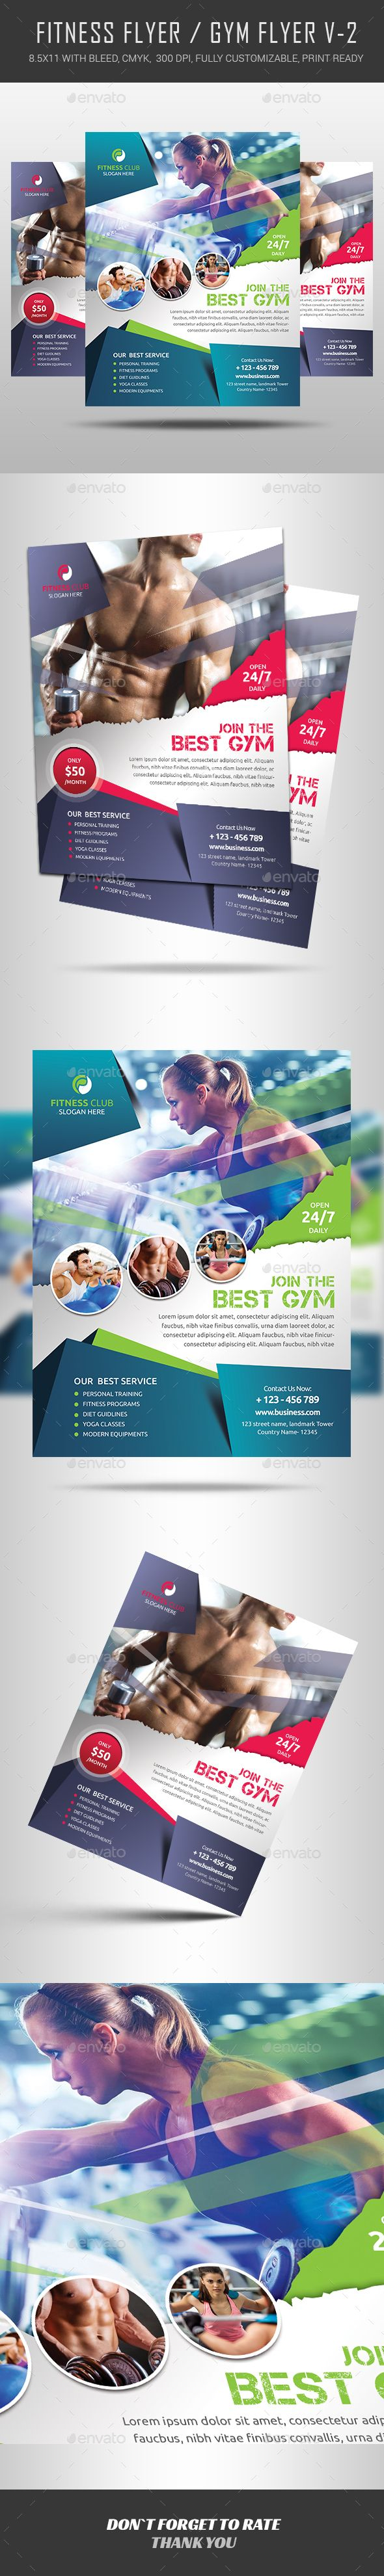 Fitness Flyer — Photoshop PSD #training #aerobics • Available here → https://graphicriver.net/item/fitness-flyer/12294825?ref=pxcr